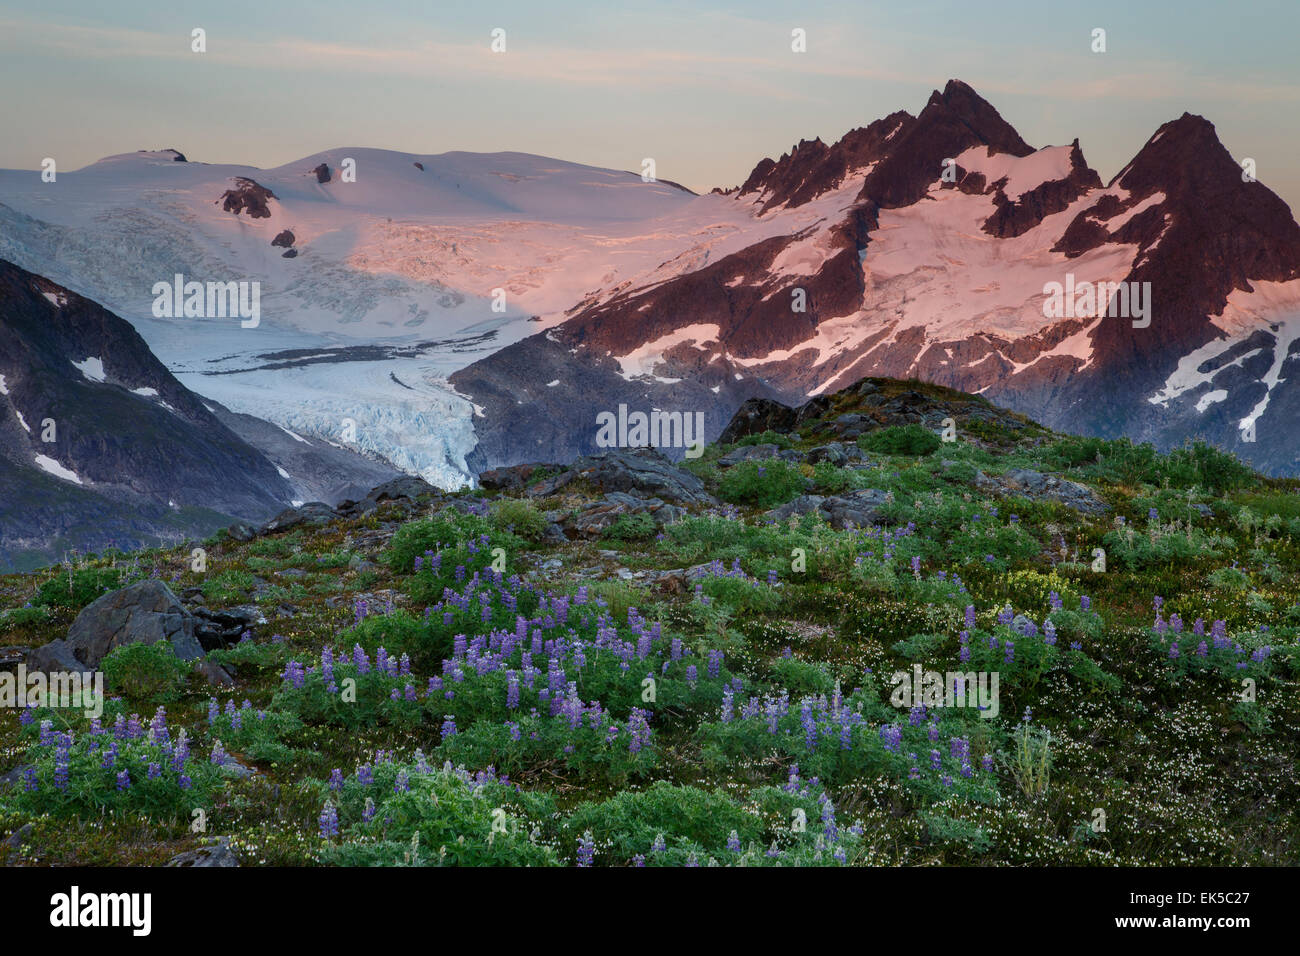 Wildflowers on Mount Stroller White above the Mendenhall Glacier, Tongass National Forest, Alaska - Stock Image